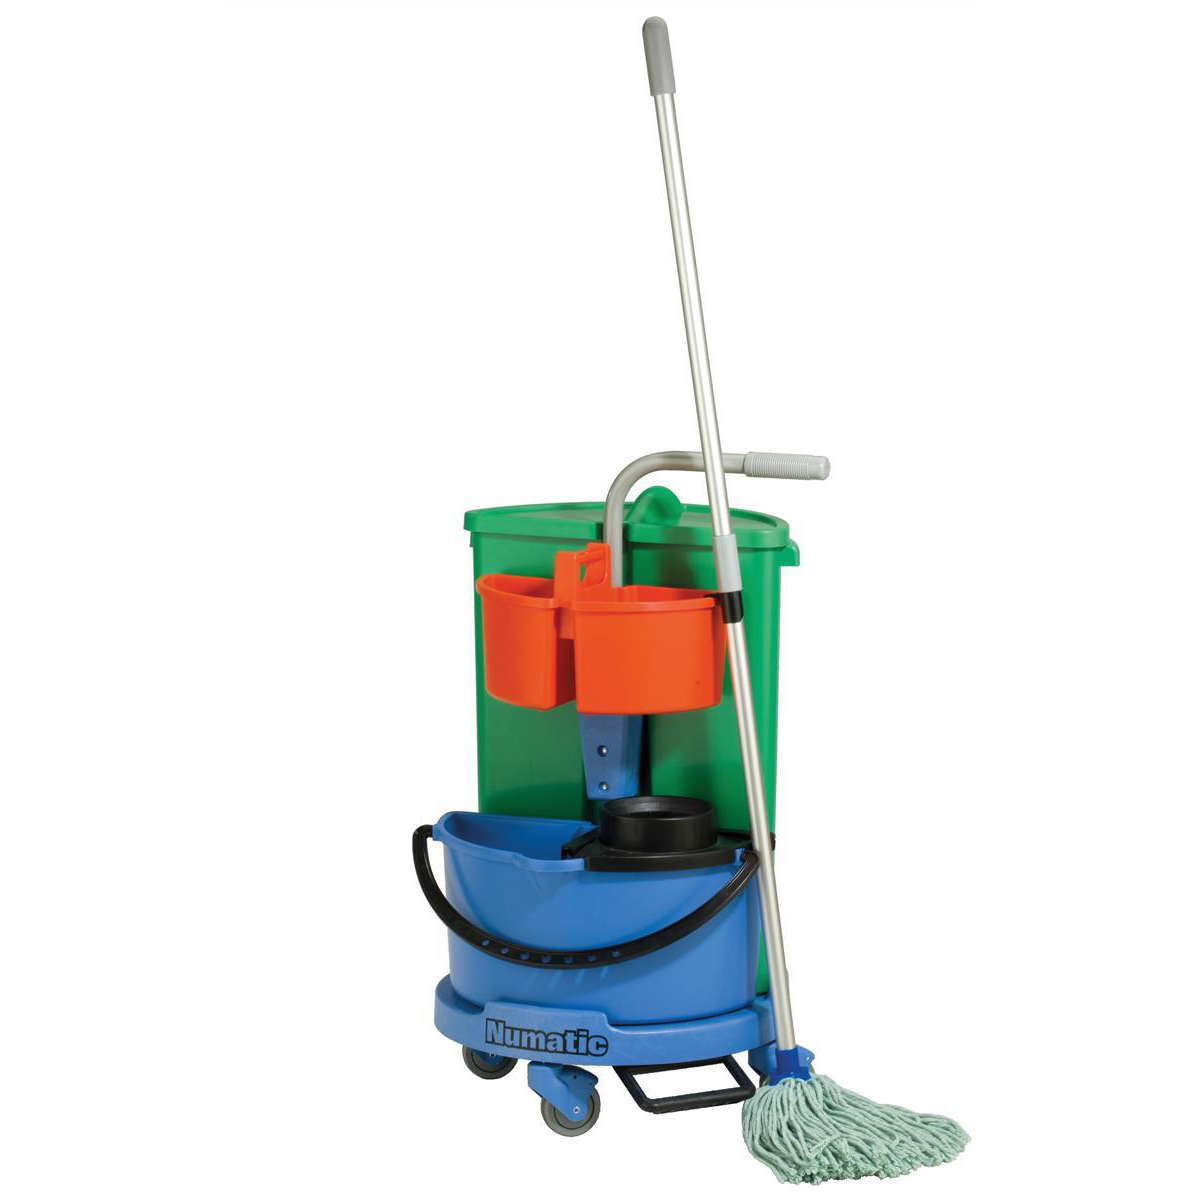 Numatic Janitorial Carousel Trolley with 2 Buckets and Storage W545xD50xH870mm Ref 907439